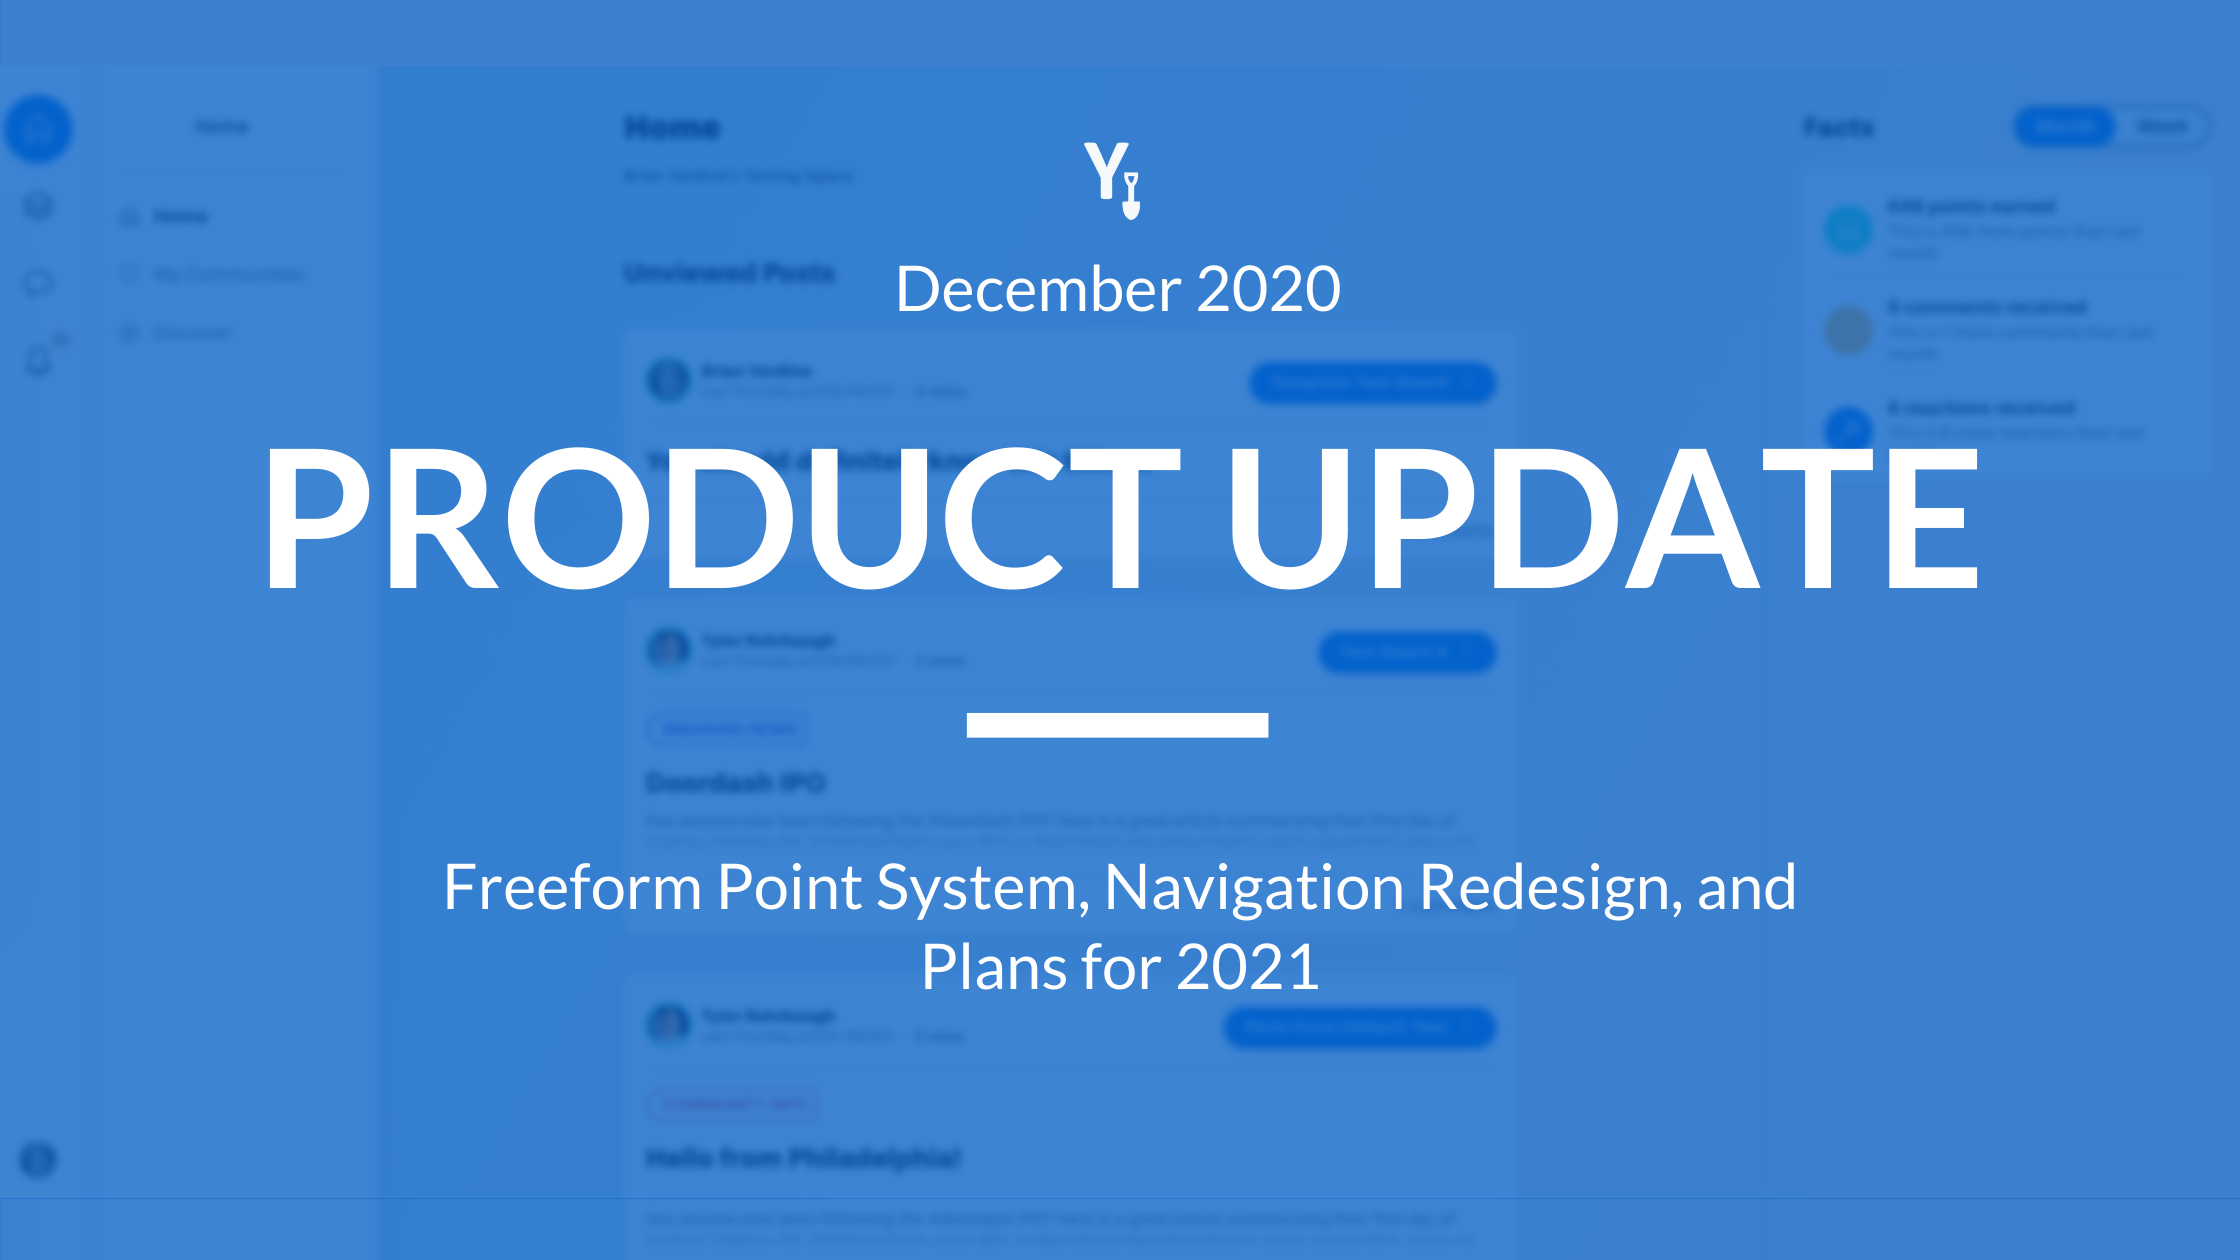 December 2020 Product Update - Freeform Point System, Navigation Redesign, and Plans for 2021